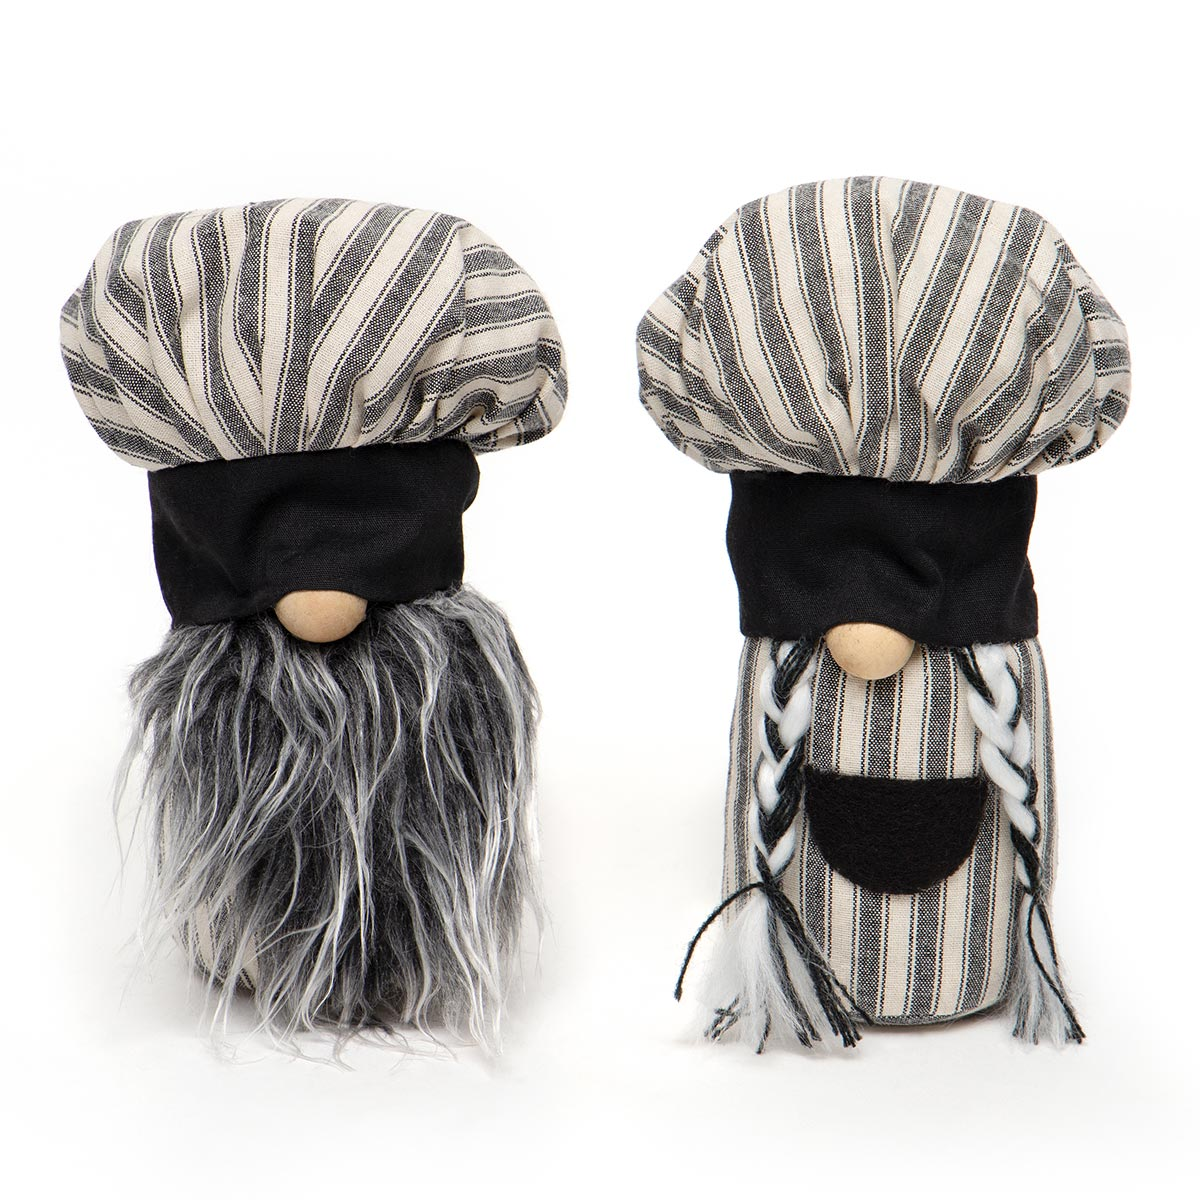 BON APPETIT DUO GNOME WITH CREAM/GREY STRIPED